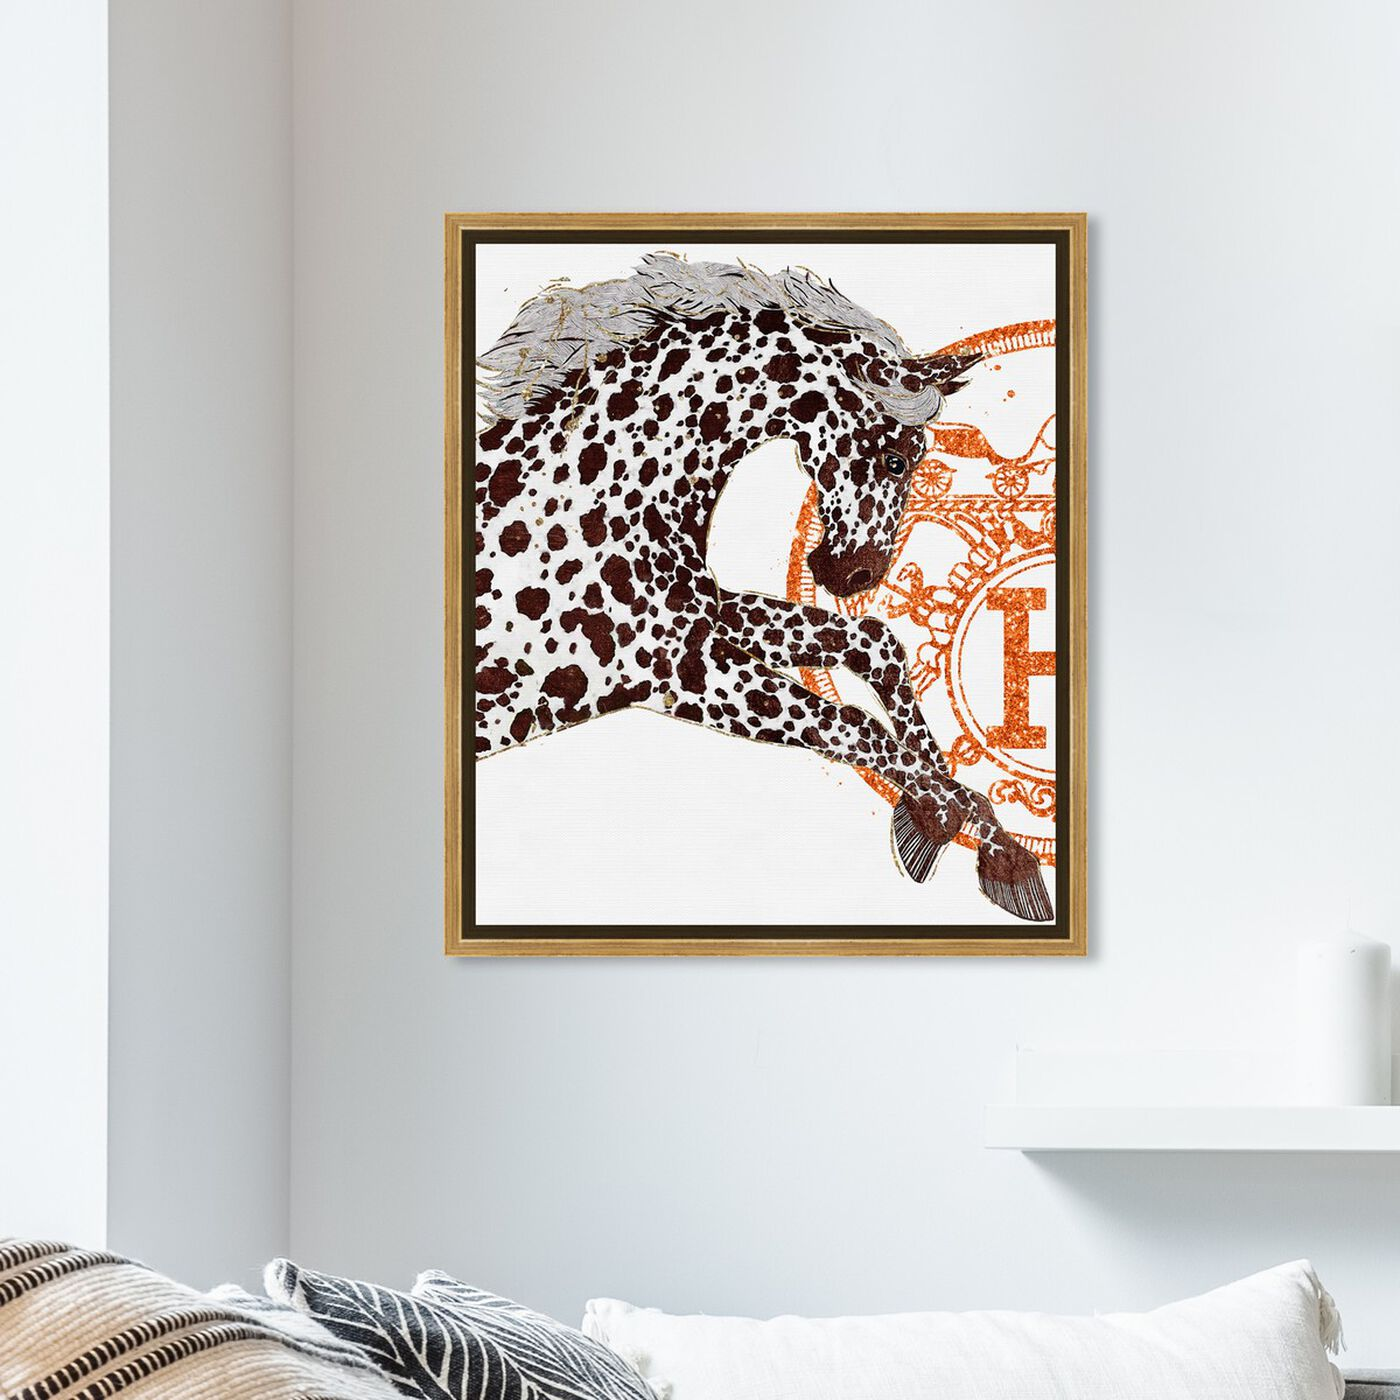 Hanging view of Appaloosa Cavalier I featuring fashion and glam and fashion art.